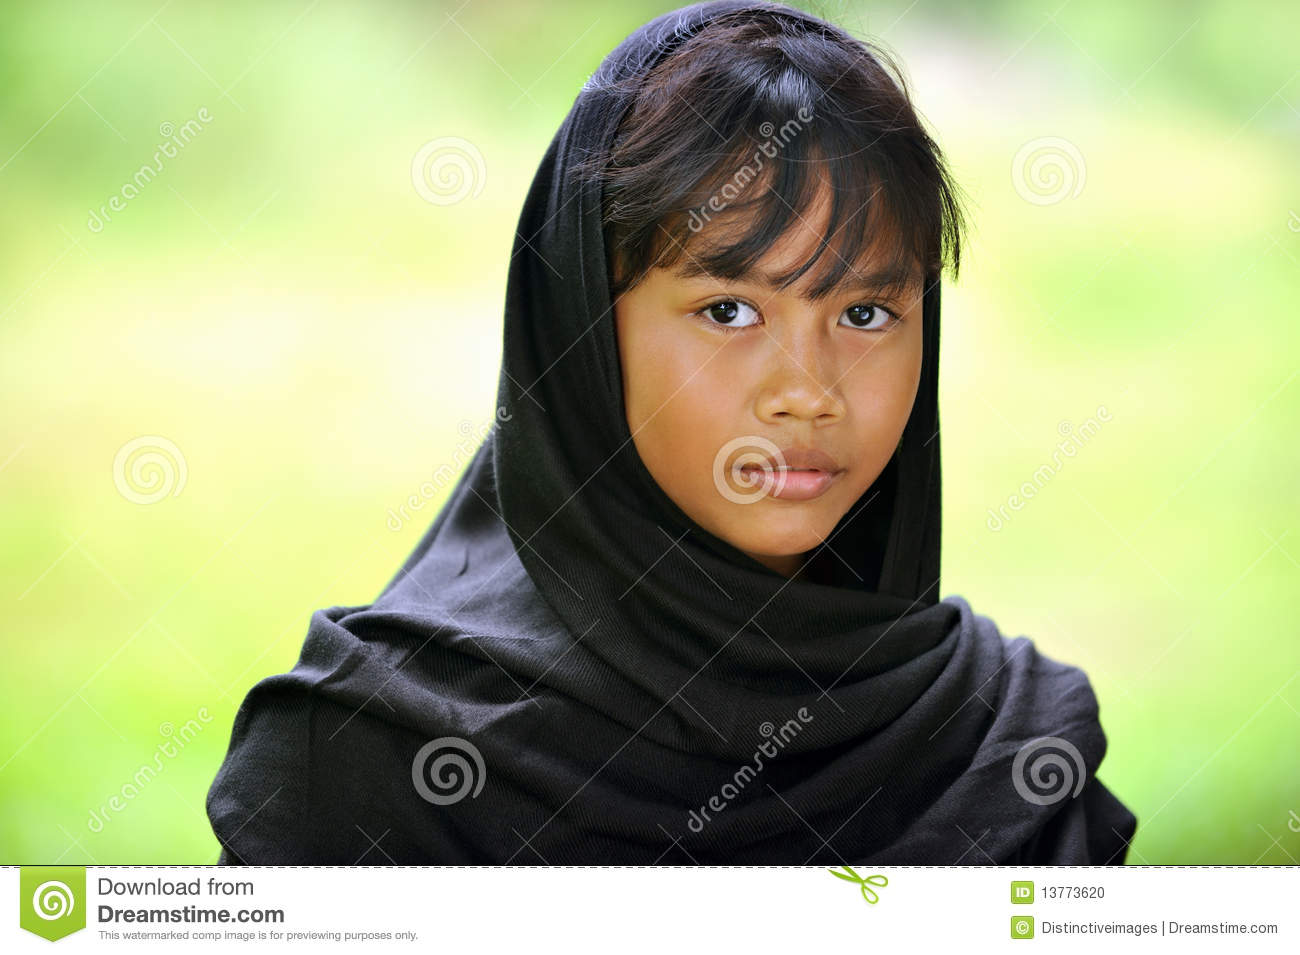 trumbauersville muslim girl personals Can a non muslim guy date a muslim girl yes that is, if she wants to a muslim women can date any person however, if she is a religious person, then she would limit herself to muslim men  what are the perks of dating a muslim girl can a muslim woman marry a non-muslim man without requiring her husband to convert.